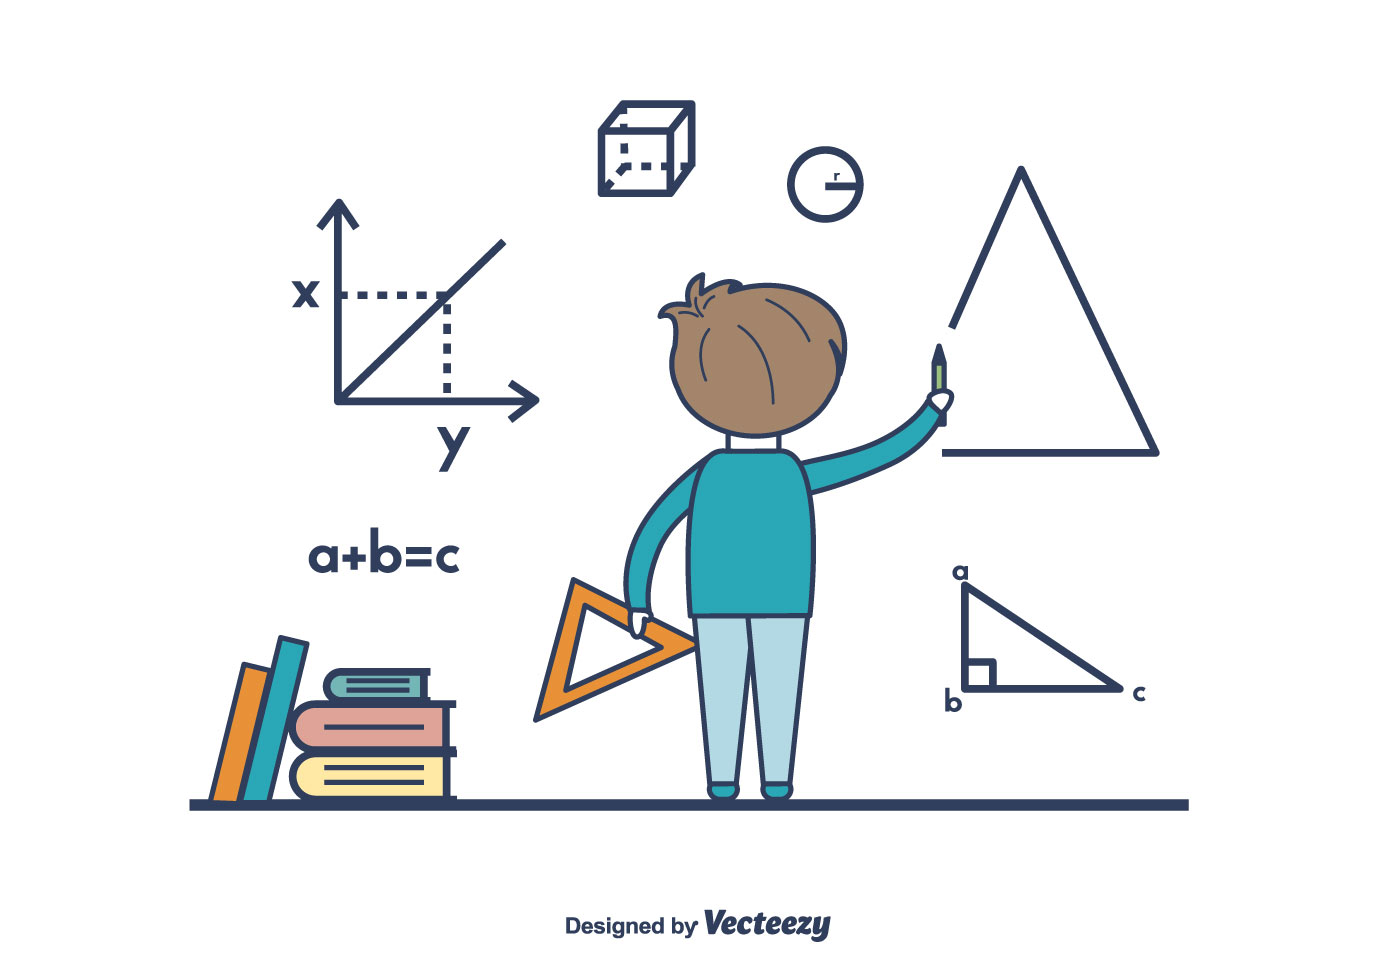 Boy doing math vector download free vector art stock graphics boy doing math vector download free vector art stock graphics images buycottarizona Image collections